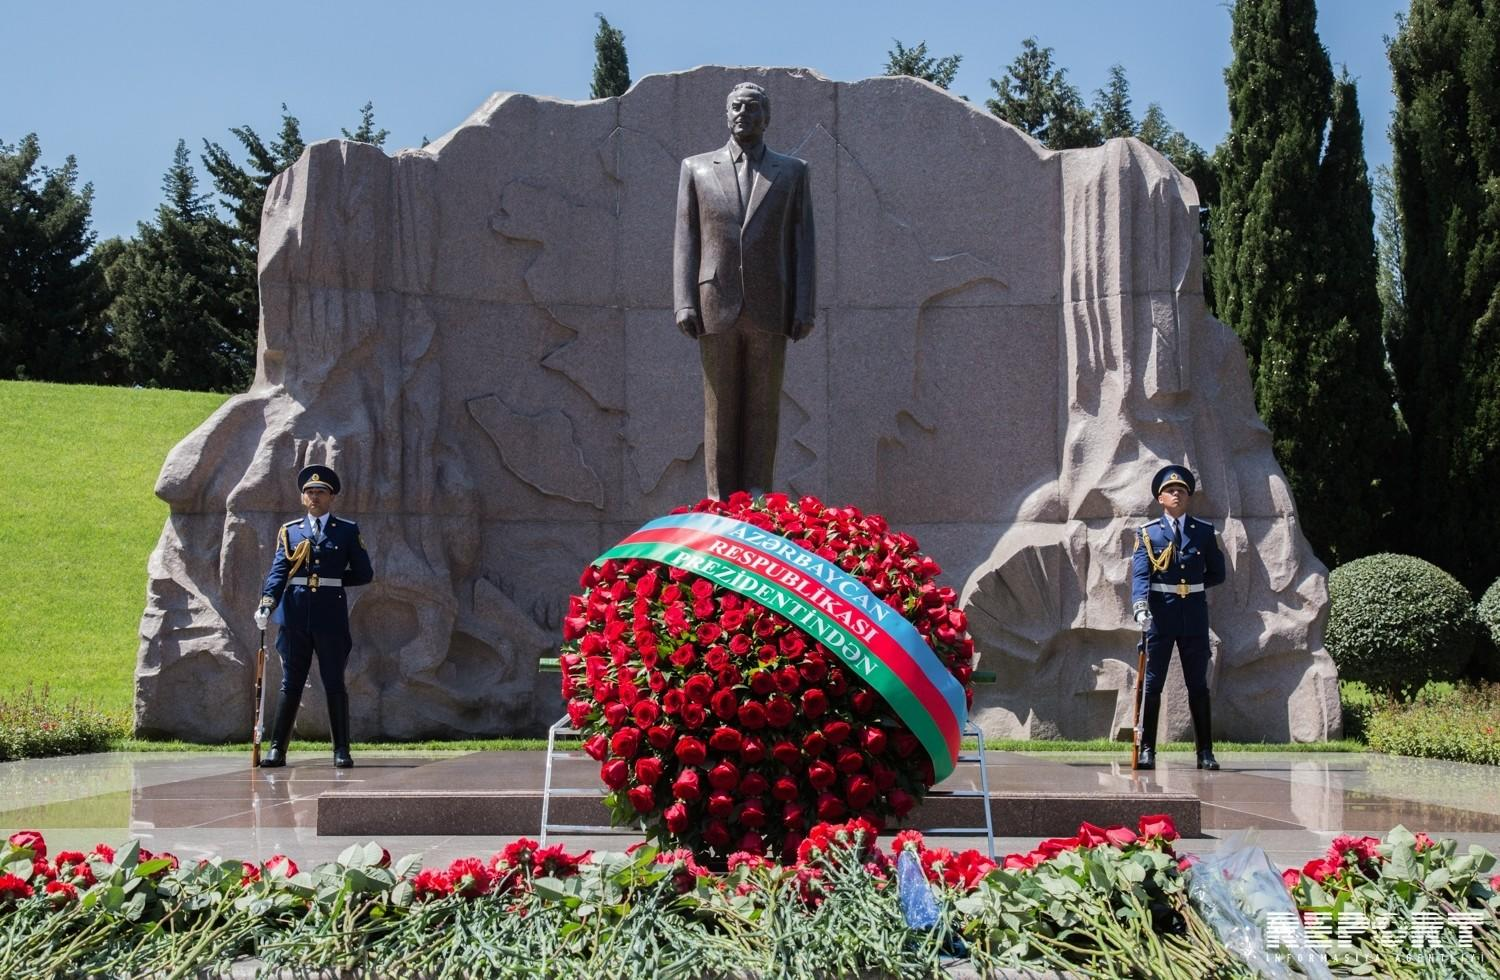 Garibashvili visited the grave of Heydar Aliyev